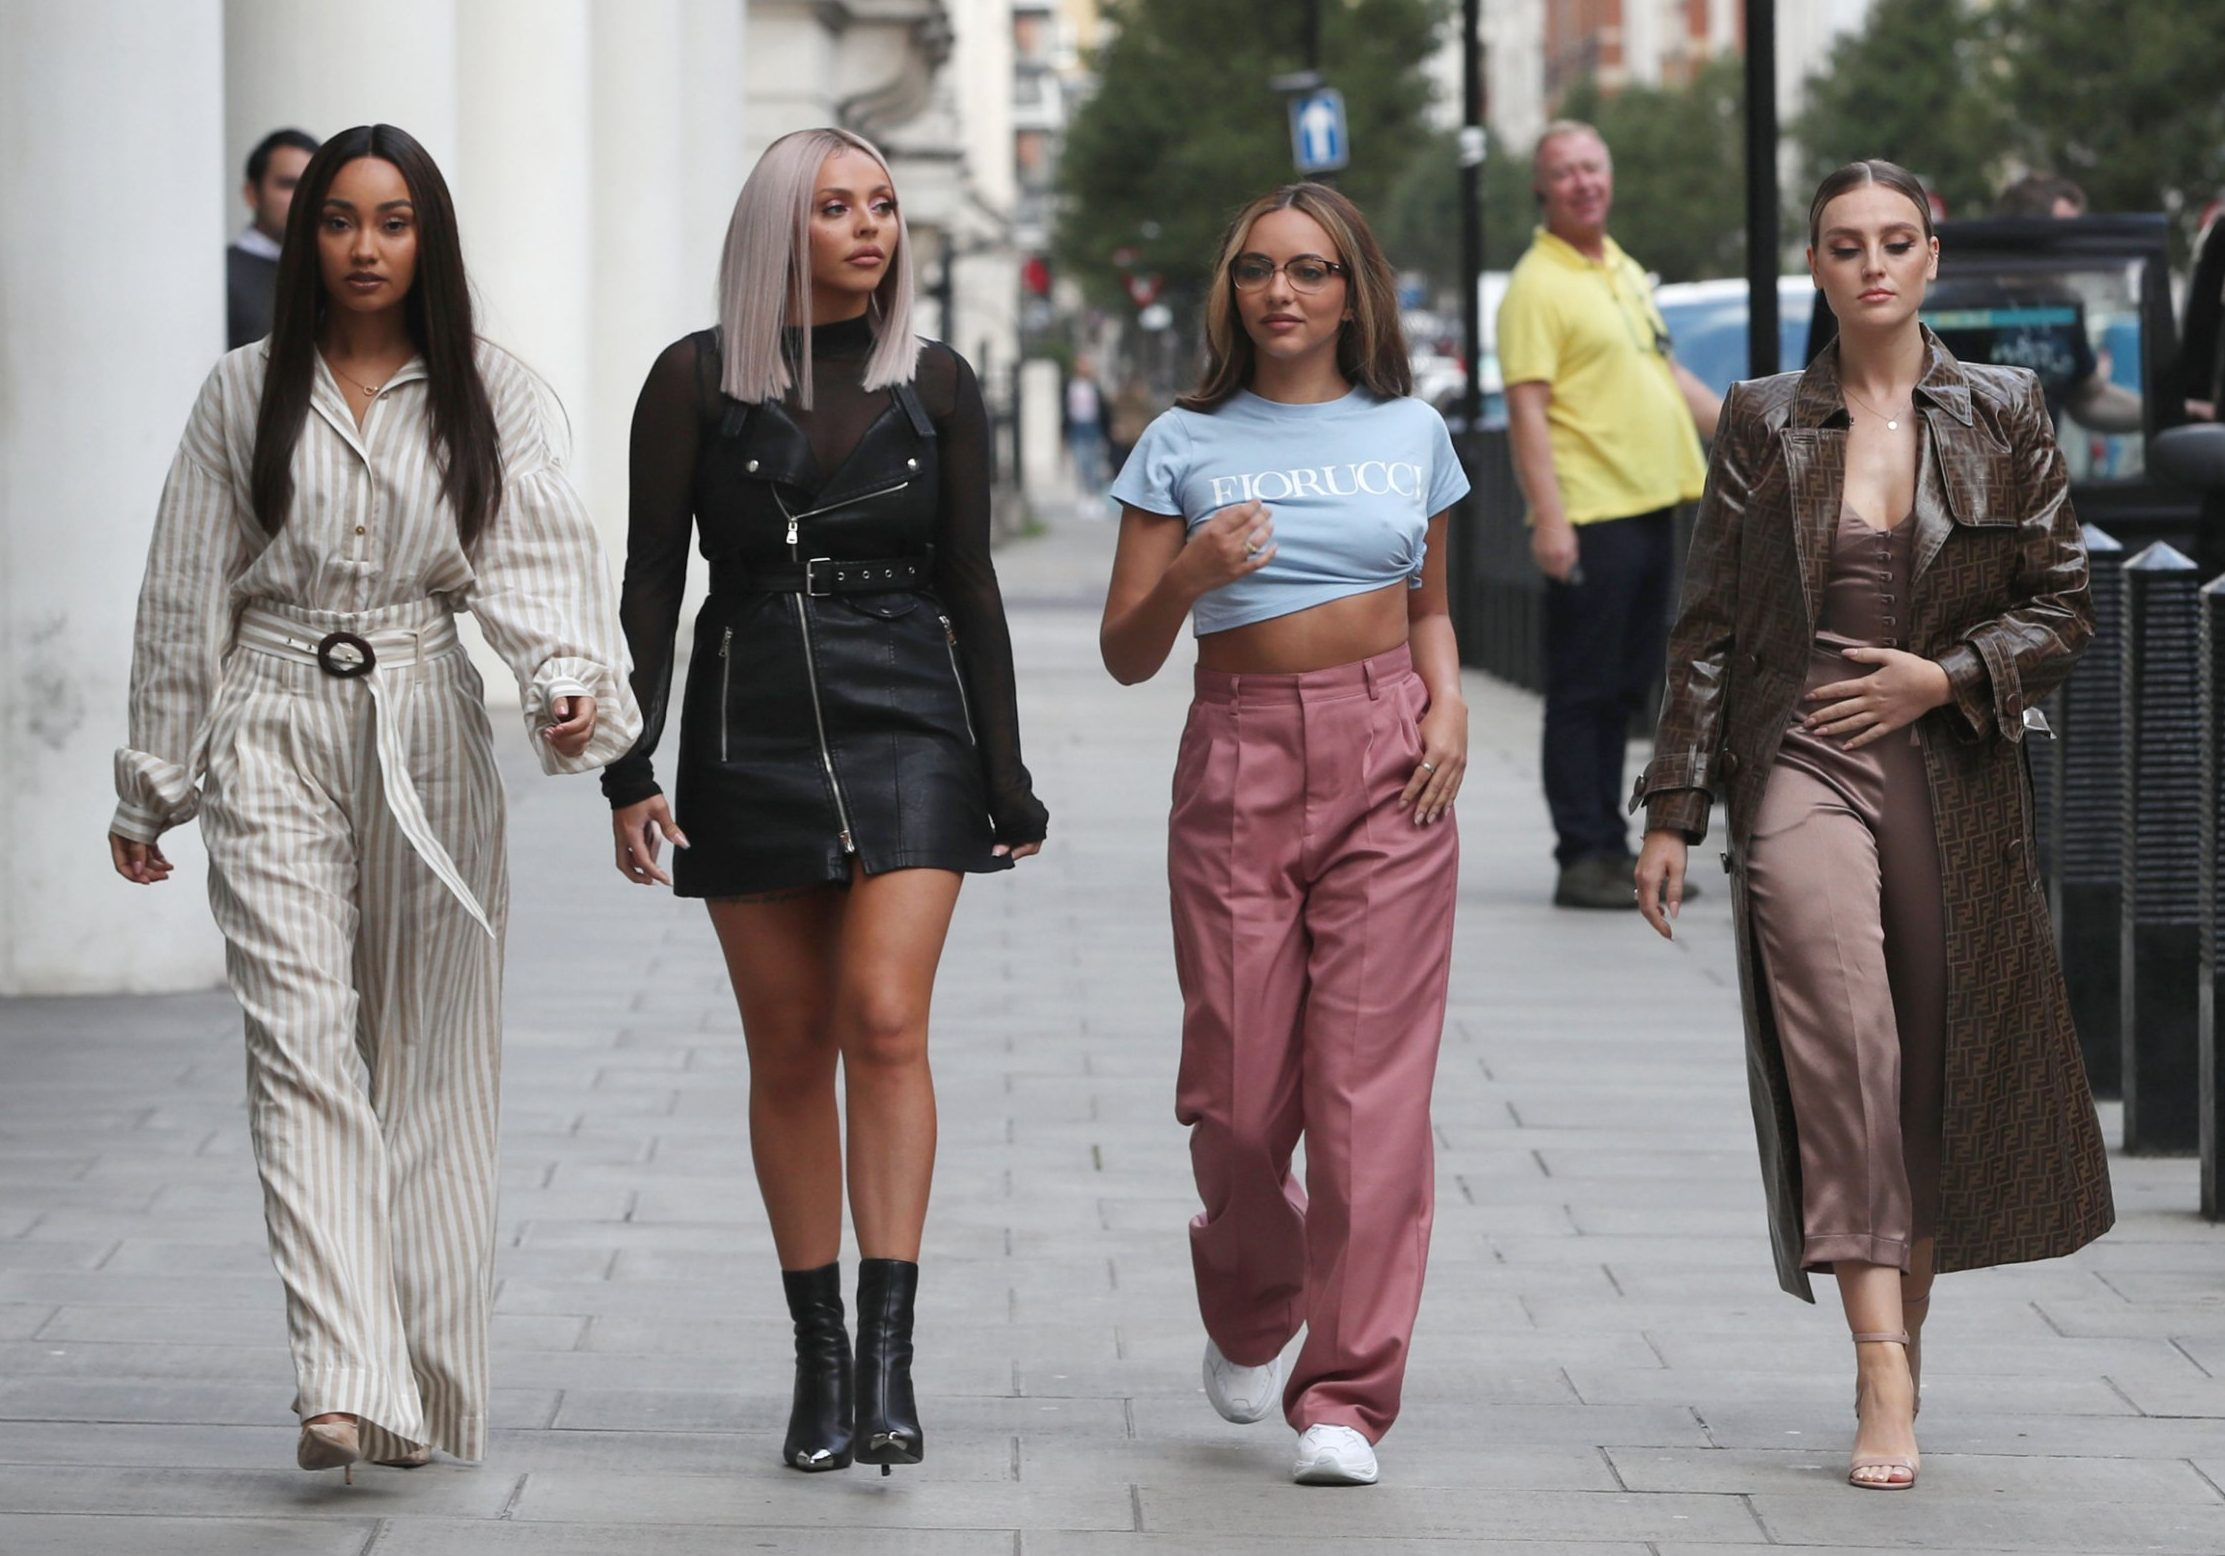 Mandatory Credit: Photo by Beretta/Sims/REX (9922670u) Leigh-Anne Pinnock, Jesy Nelson, Jade Thirlwall and Perrie Edwards at BBC radio 1 Little Mix out and about, London, UK - 11 Oct 2018